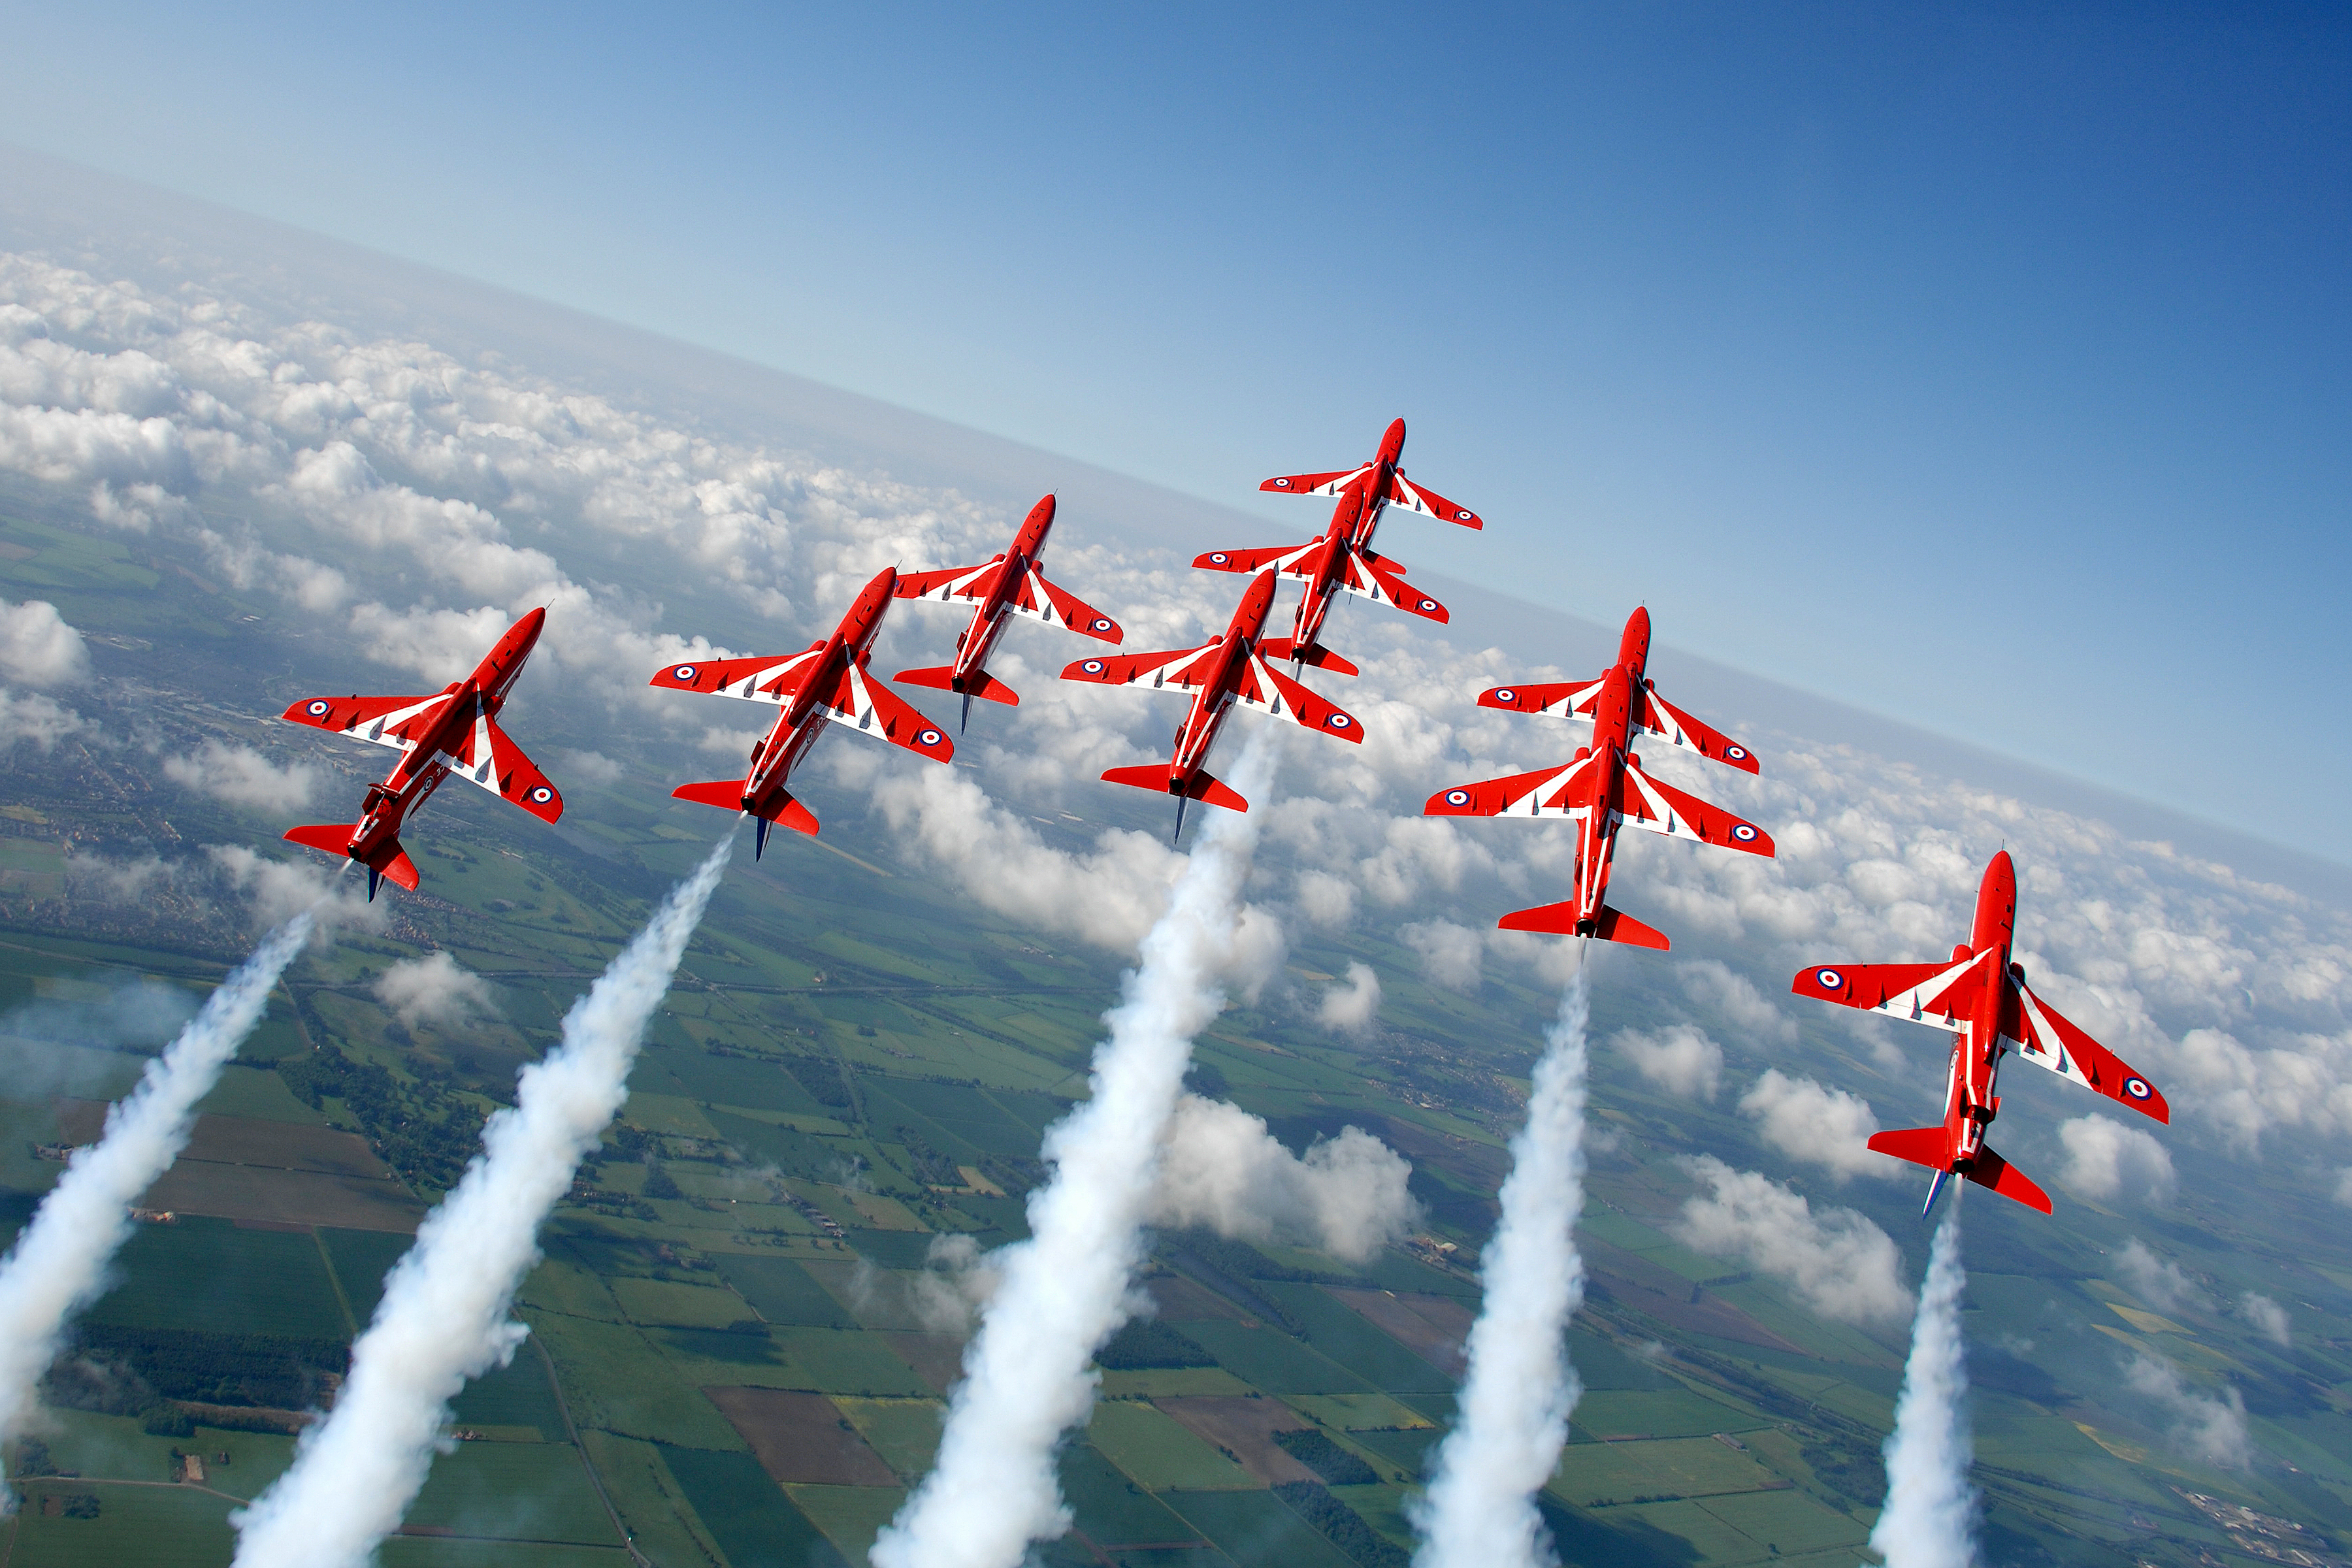 The Red Arrows display over RAF Scampton